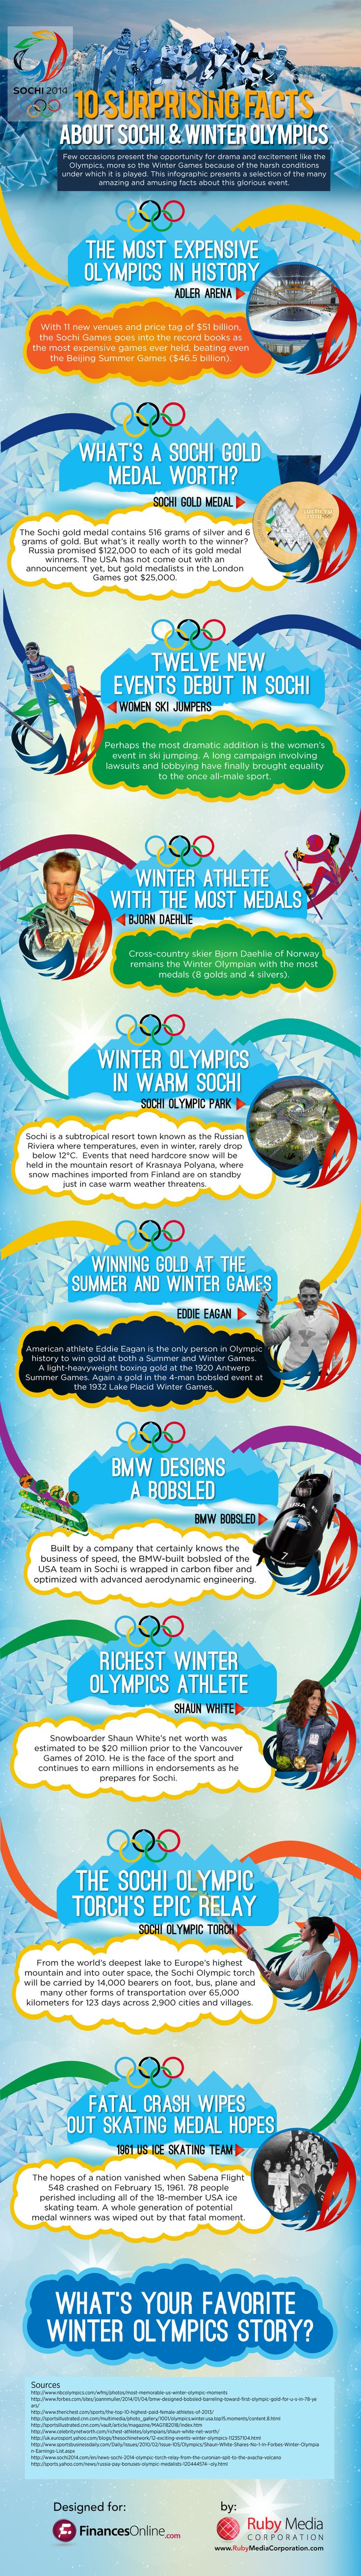 Use this trend to your advantage ;-) 2014 Sochi Winter Olympics: 10 amazing facts in one #infographic